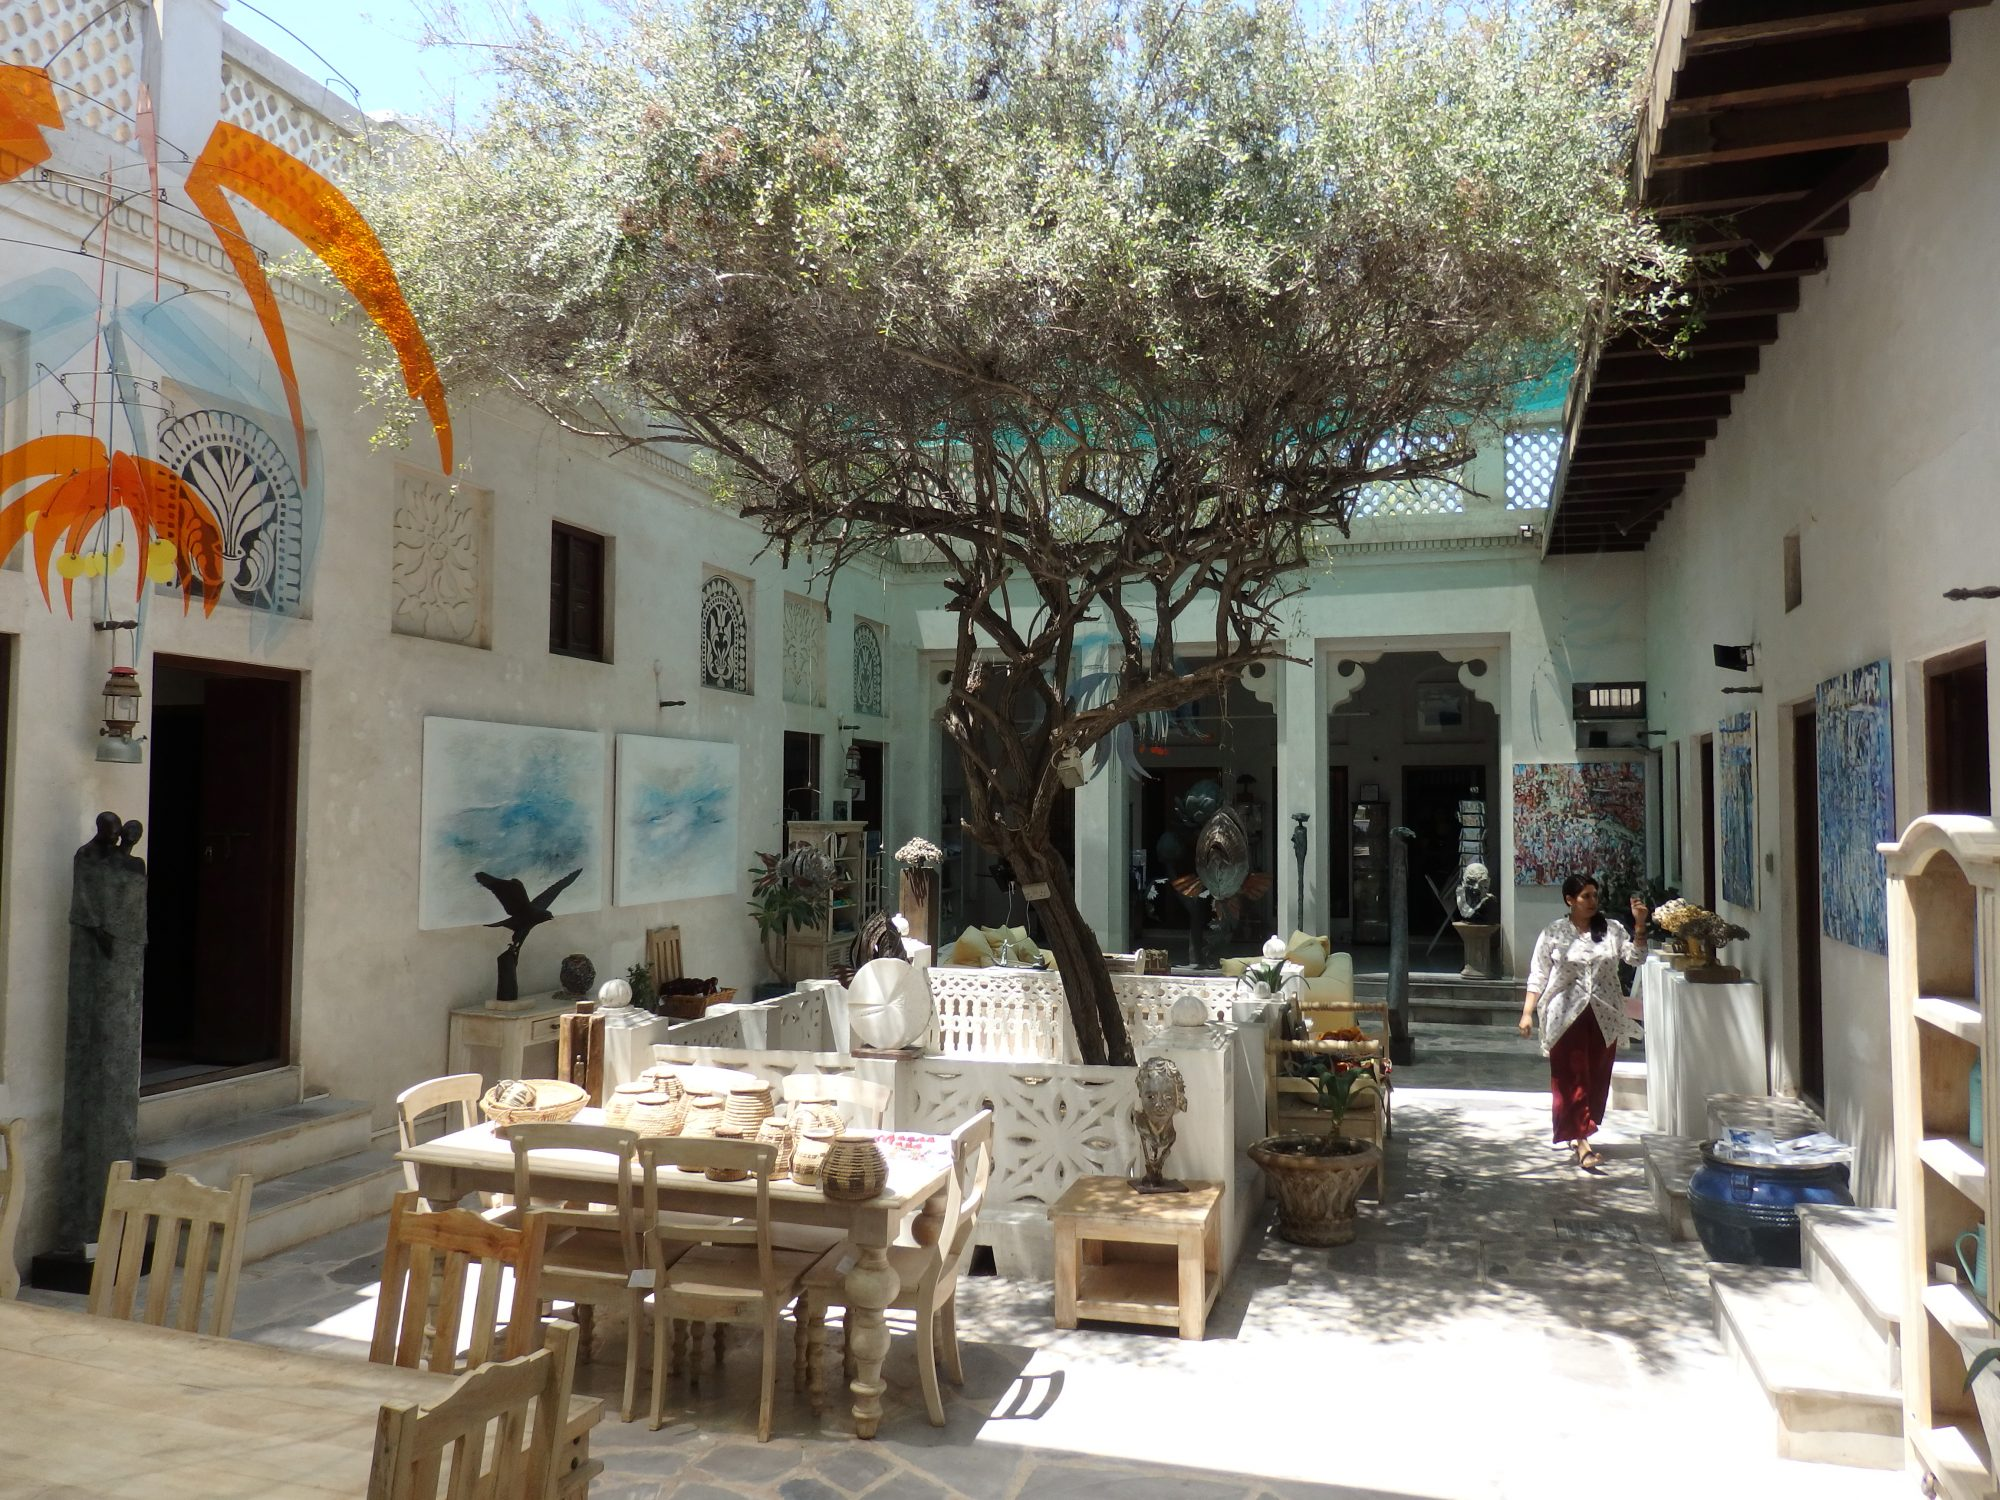 the tree-shaded, art-filled inner courtyard of the Majlis Gallery in Old Dubai